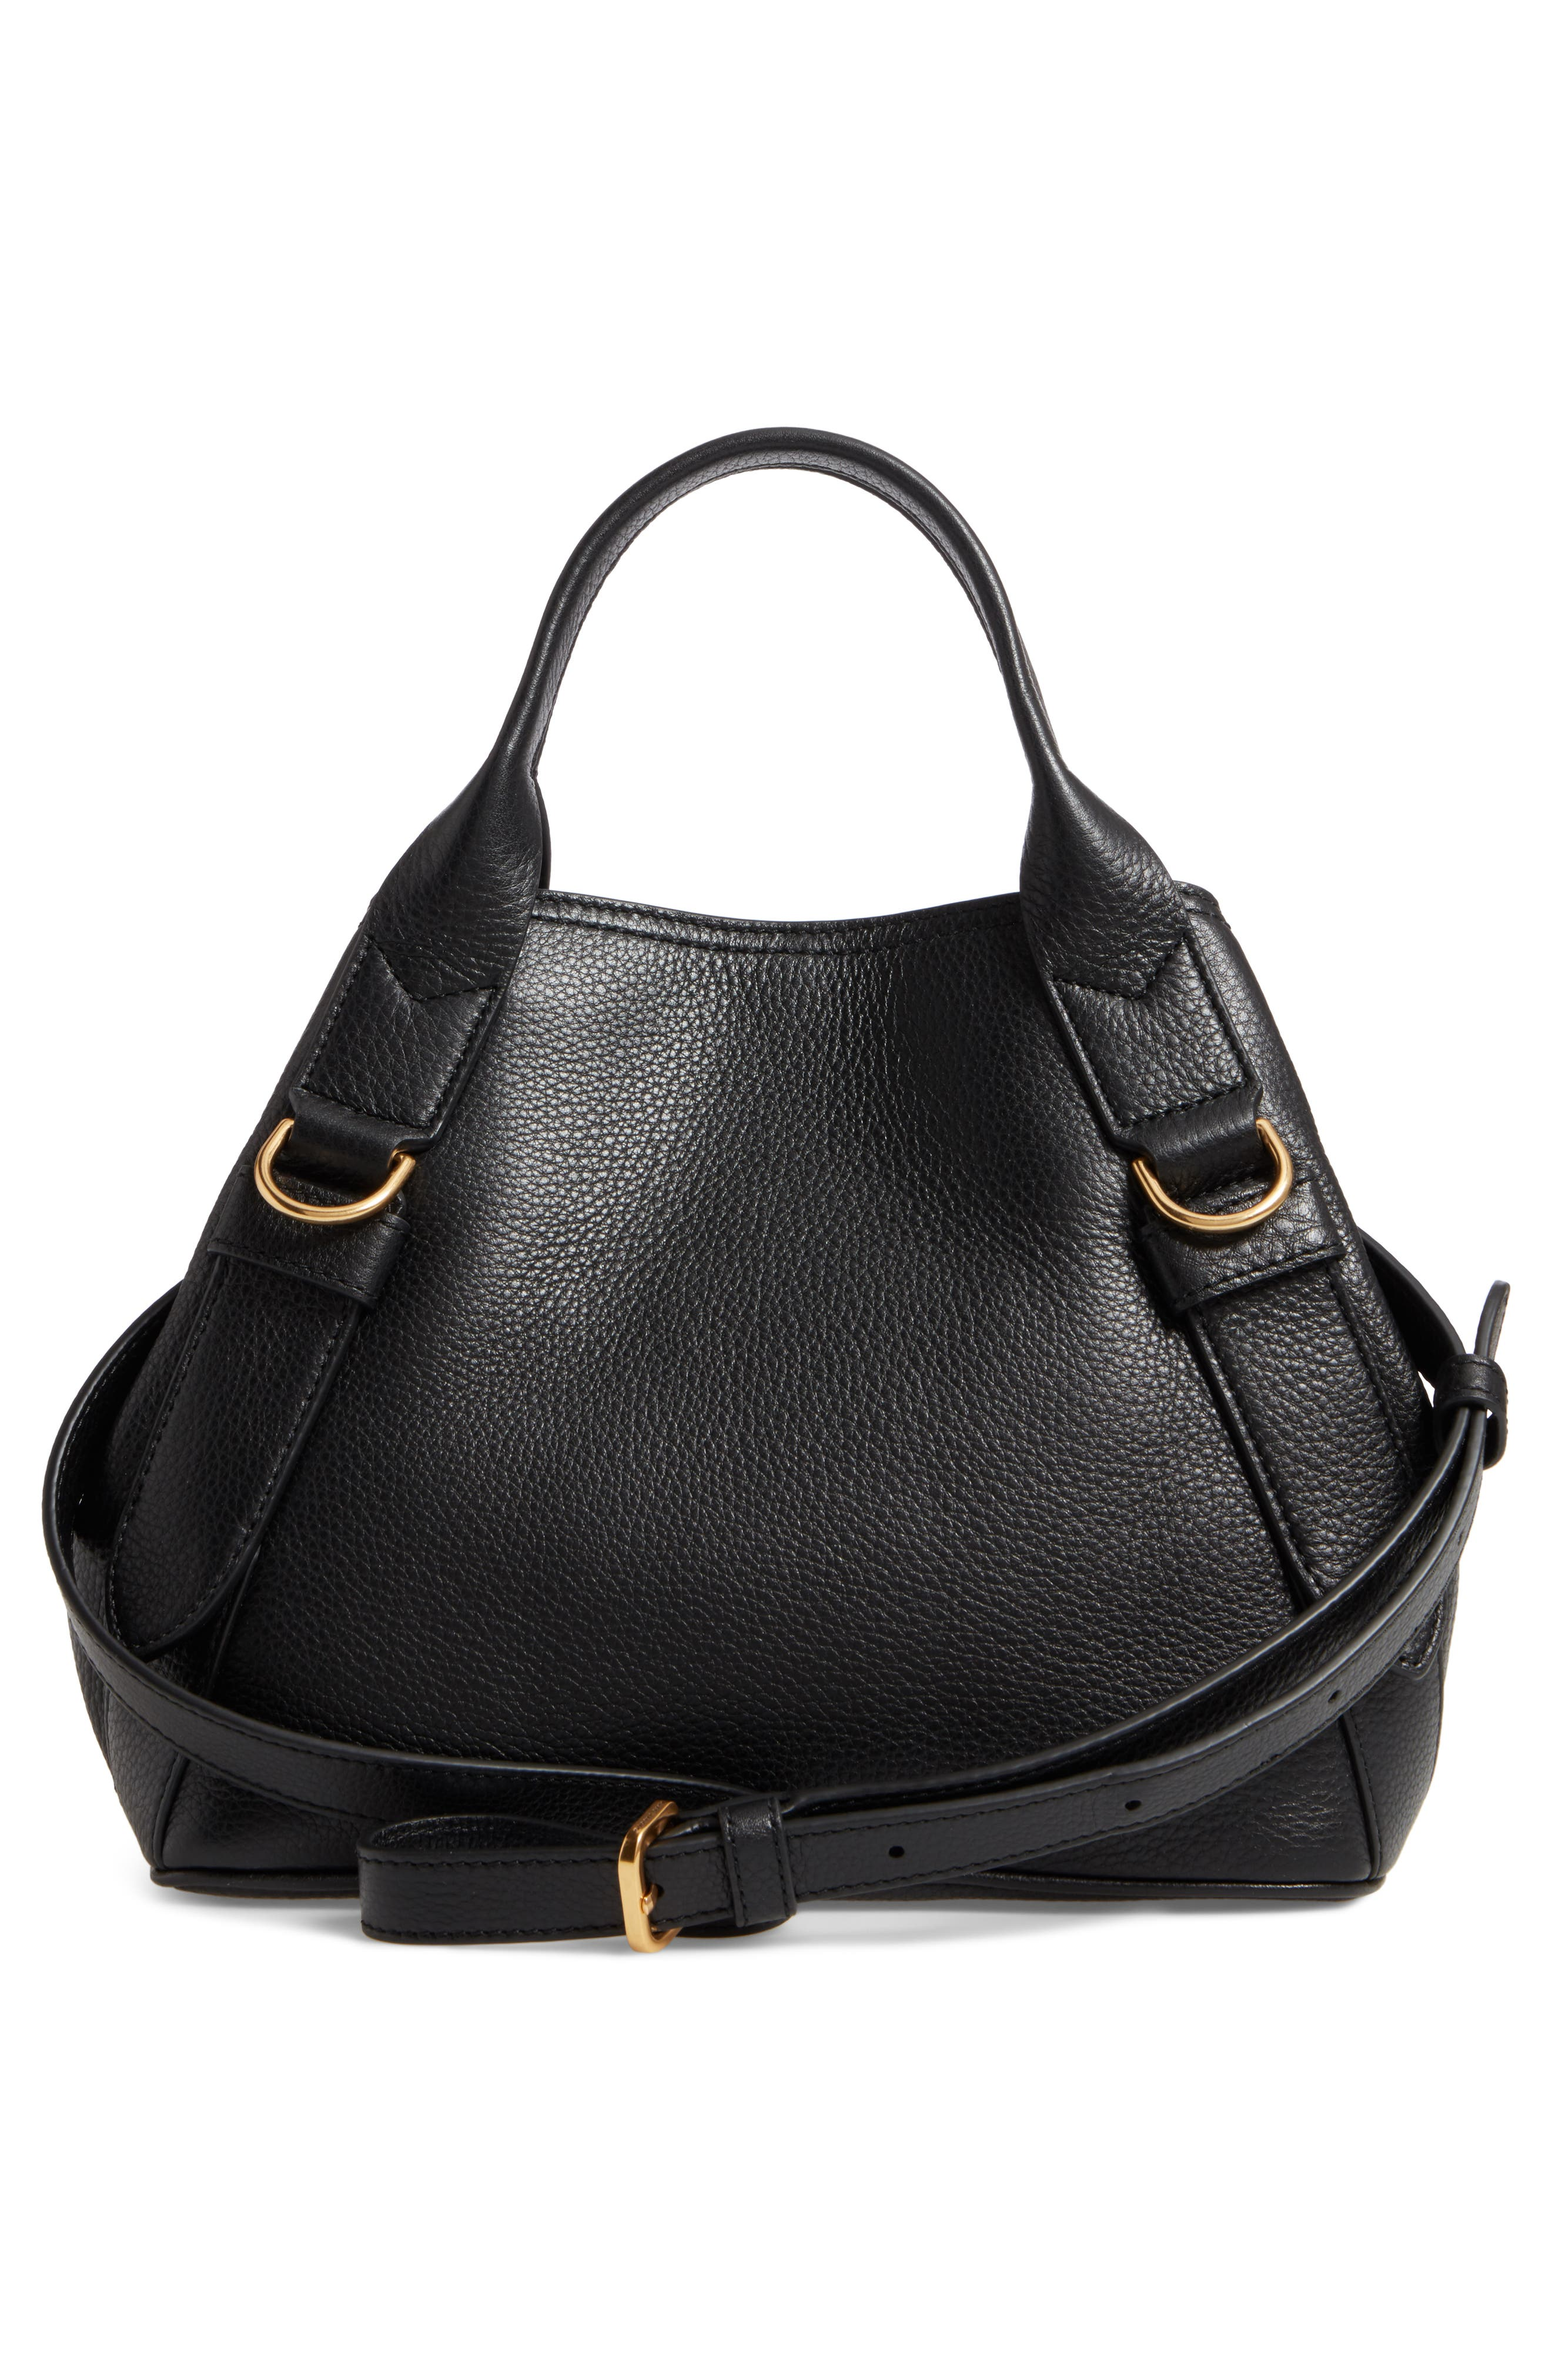 MARC JACOBS,                             The Small Anchor Leather Shoulder Bag,                             Alternate thumbnail 3, color,                             001